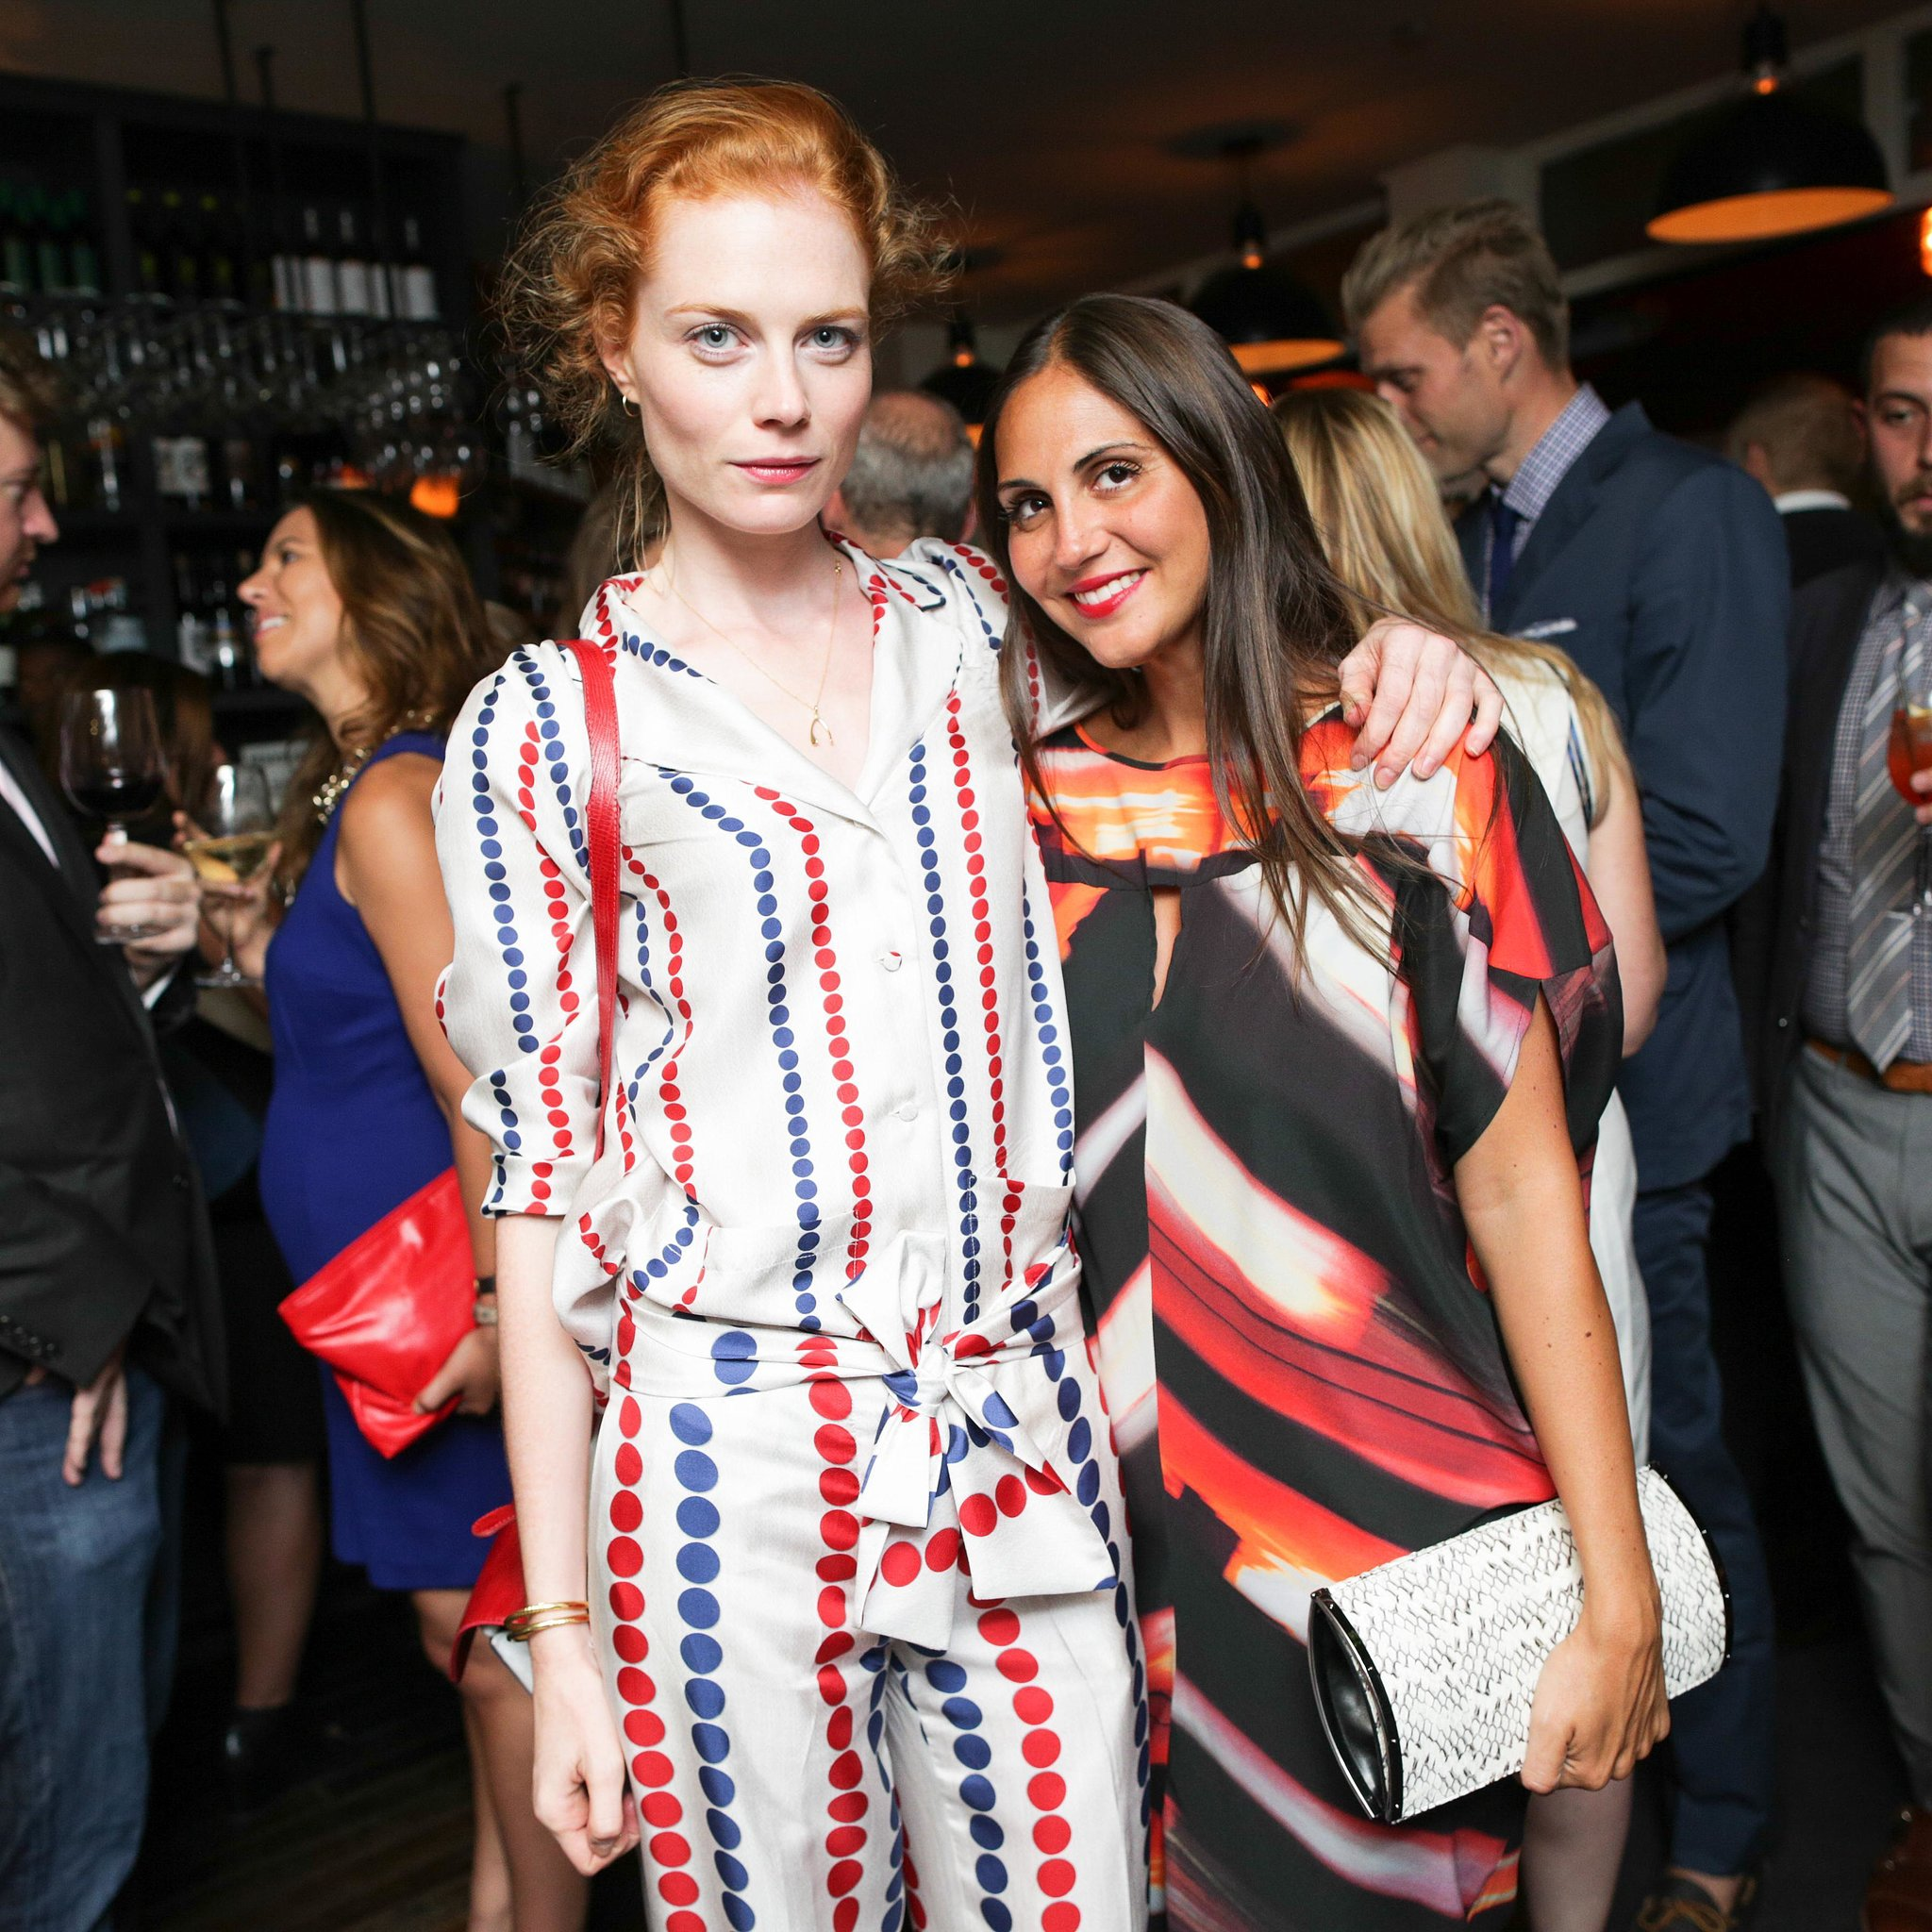 Jessica Joffe and Sabine Heller dined (colorfully!) with Michael Bastian at his Corsino dinner.